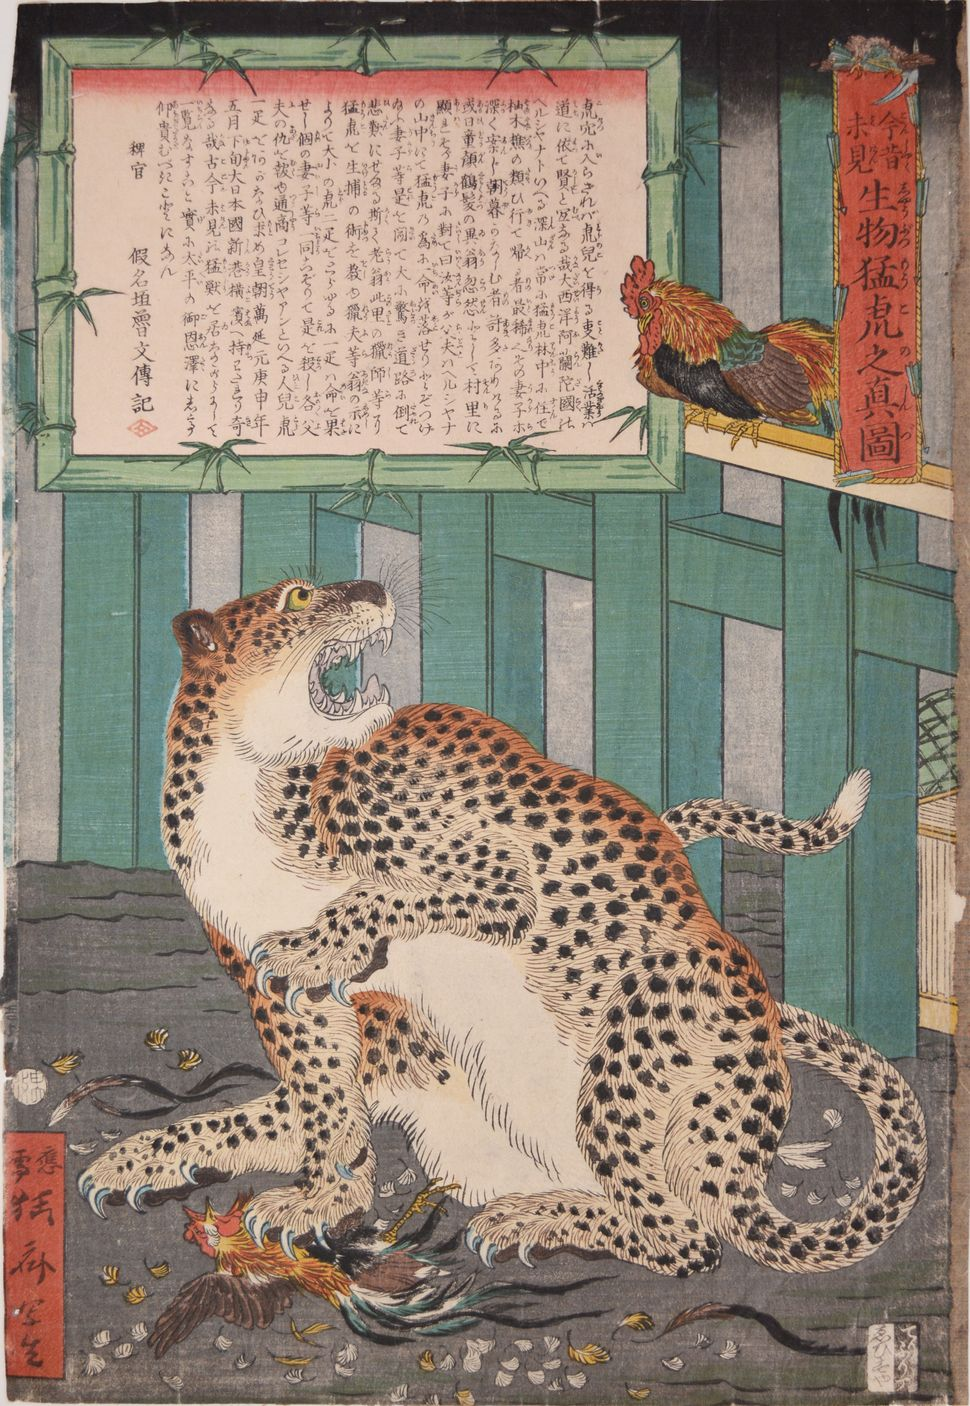 Kawanabe  Kyōsai (1831–1889), A True Picture of the Fierce Live Tiger Never Seen from the Past to the Present, 1860. Color wo